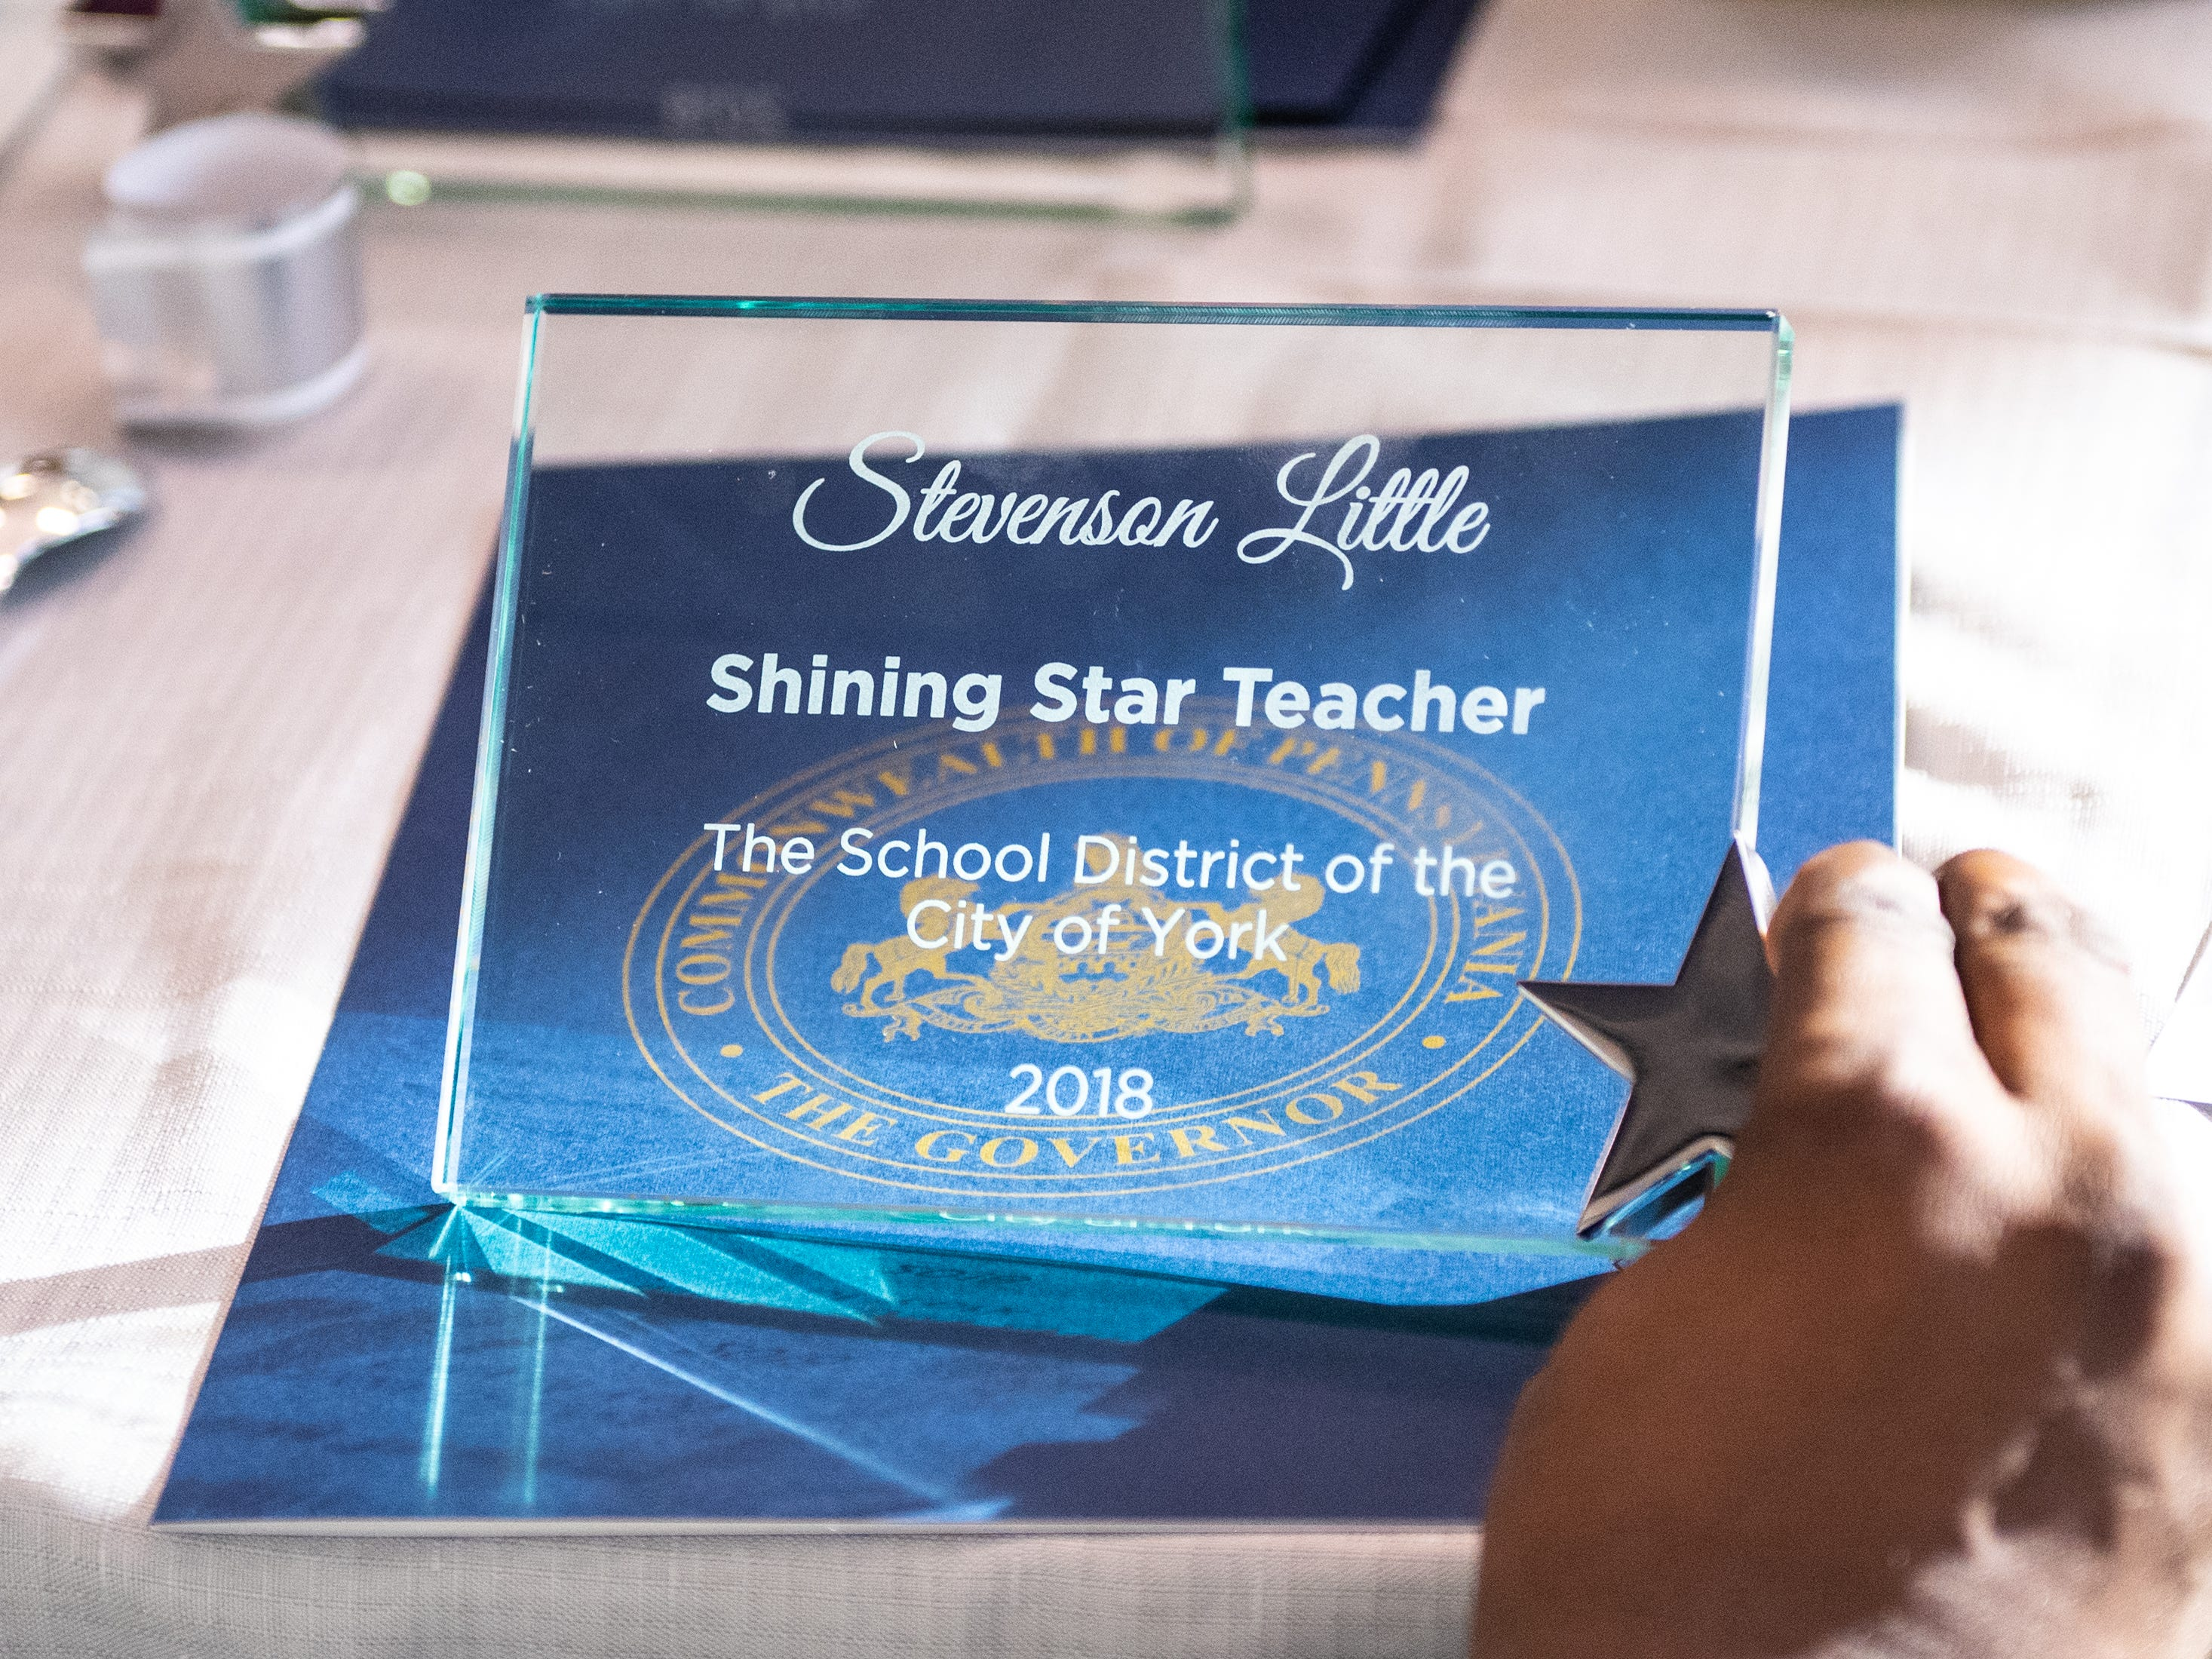 Each of the 35 teachers honored receive a clear plaque that stands up on a desk, December 6, 2018.